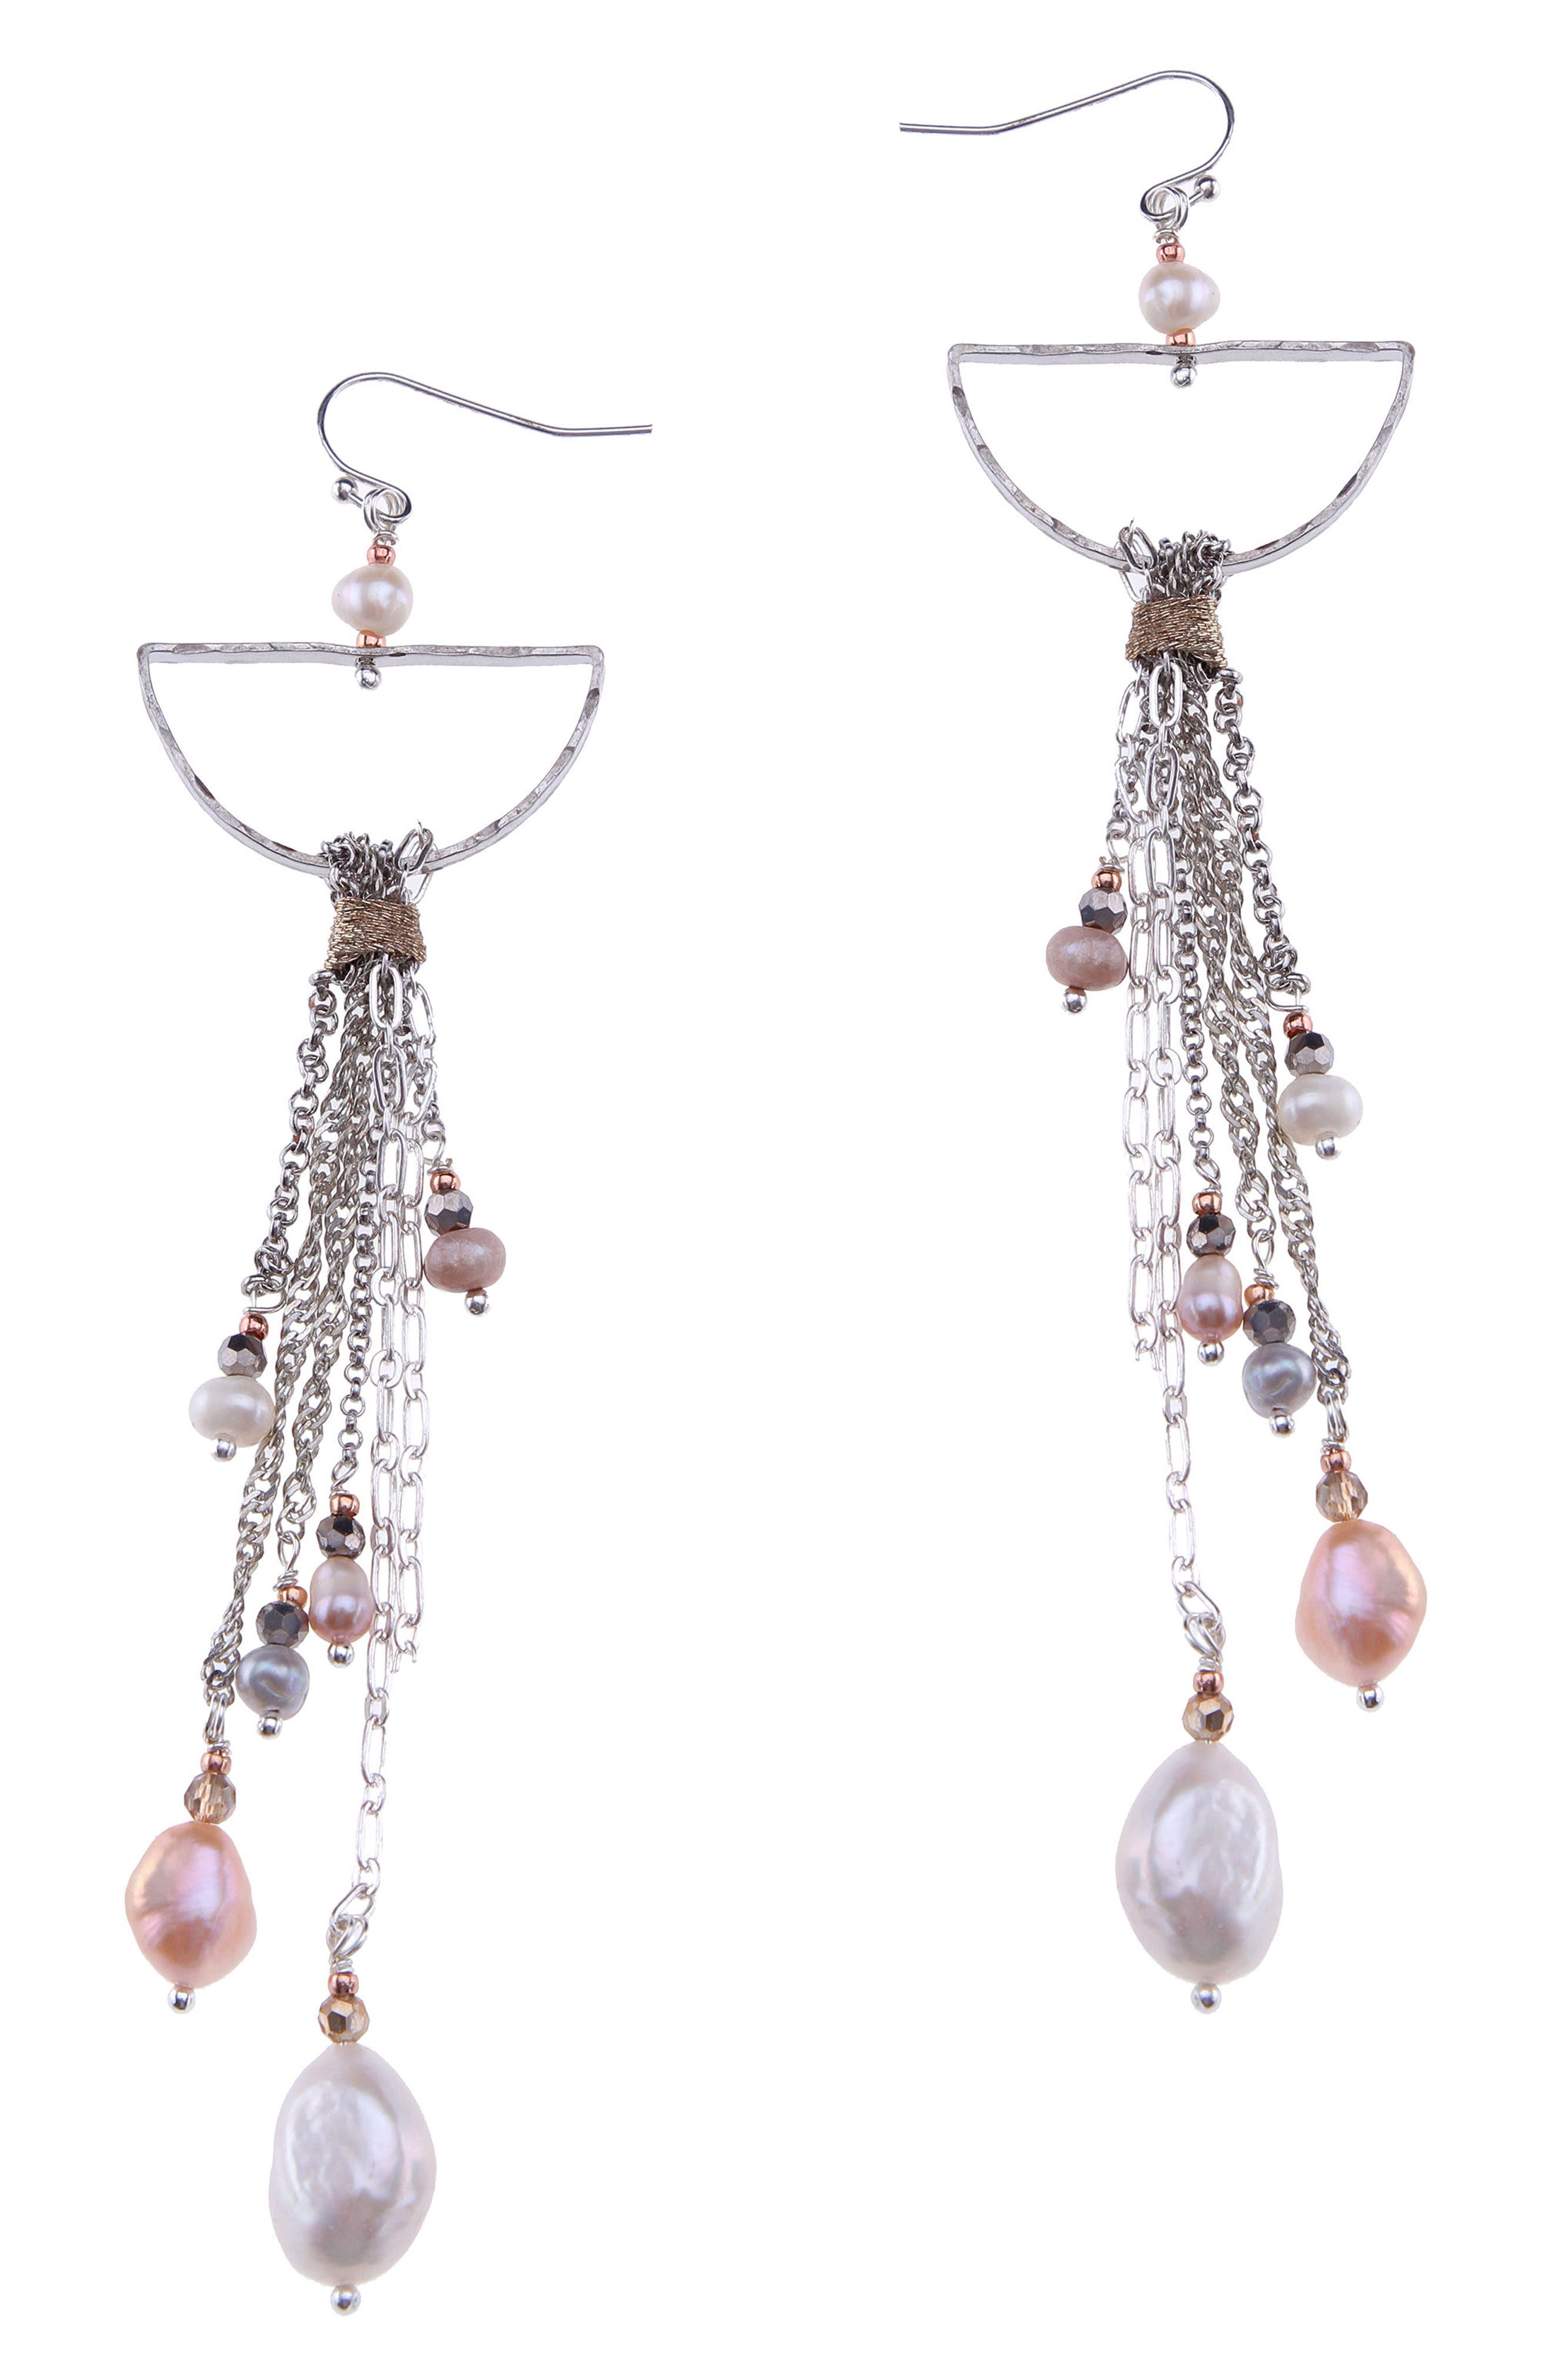 Freshwater Pearl & Chain Statement Earrings,                             Main thumbnail 1, color,